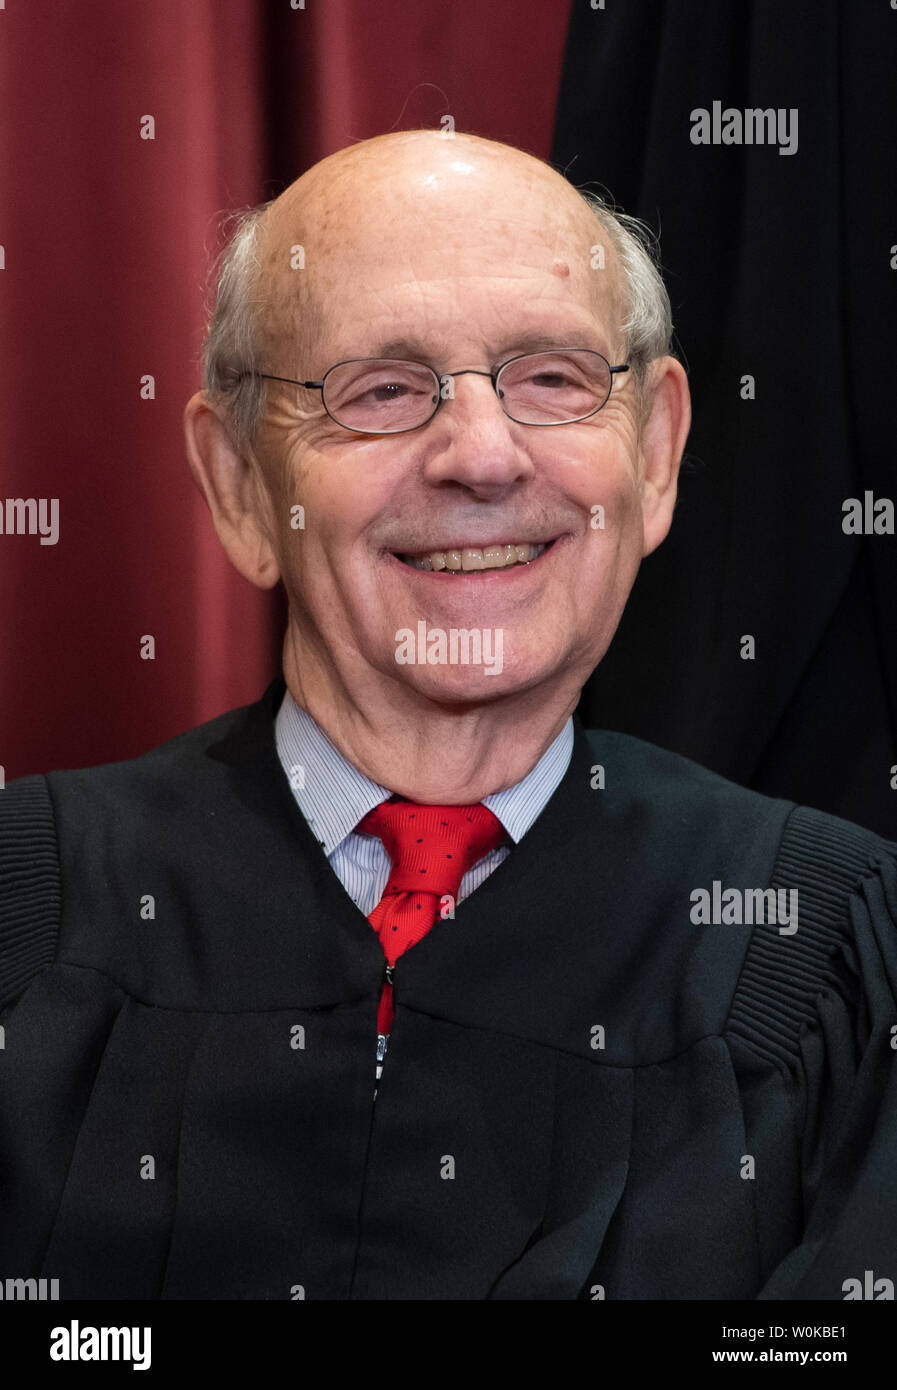 Supreme Court Associate Justice Stephen Breyer poses during the official Supreme Court group portrait at the Supreme Court on November 30, 2018 in Washington, D.C. Photo by Kevin Dietsch/UPI - Stock Image